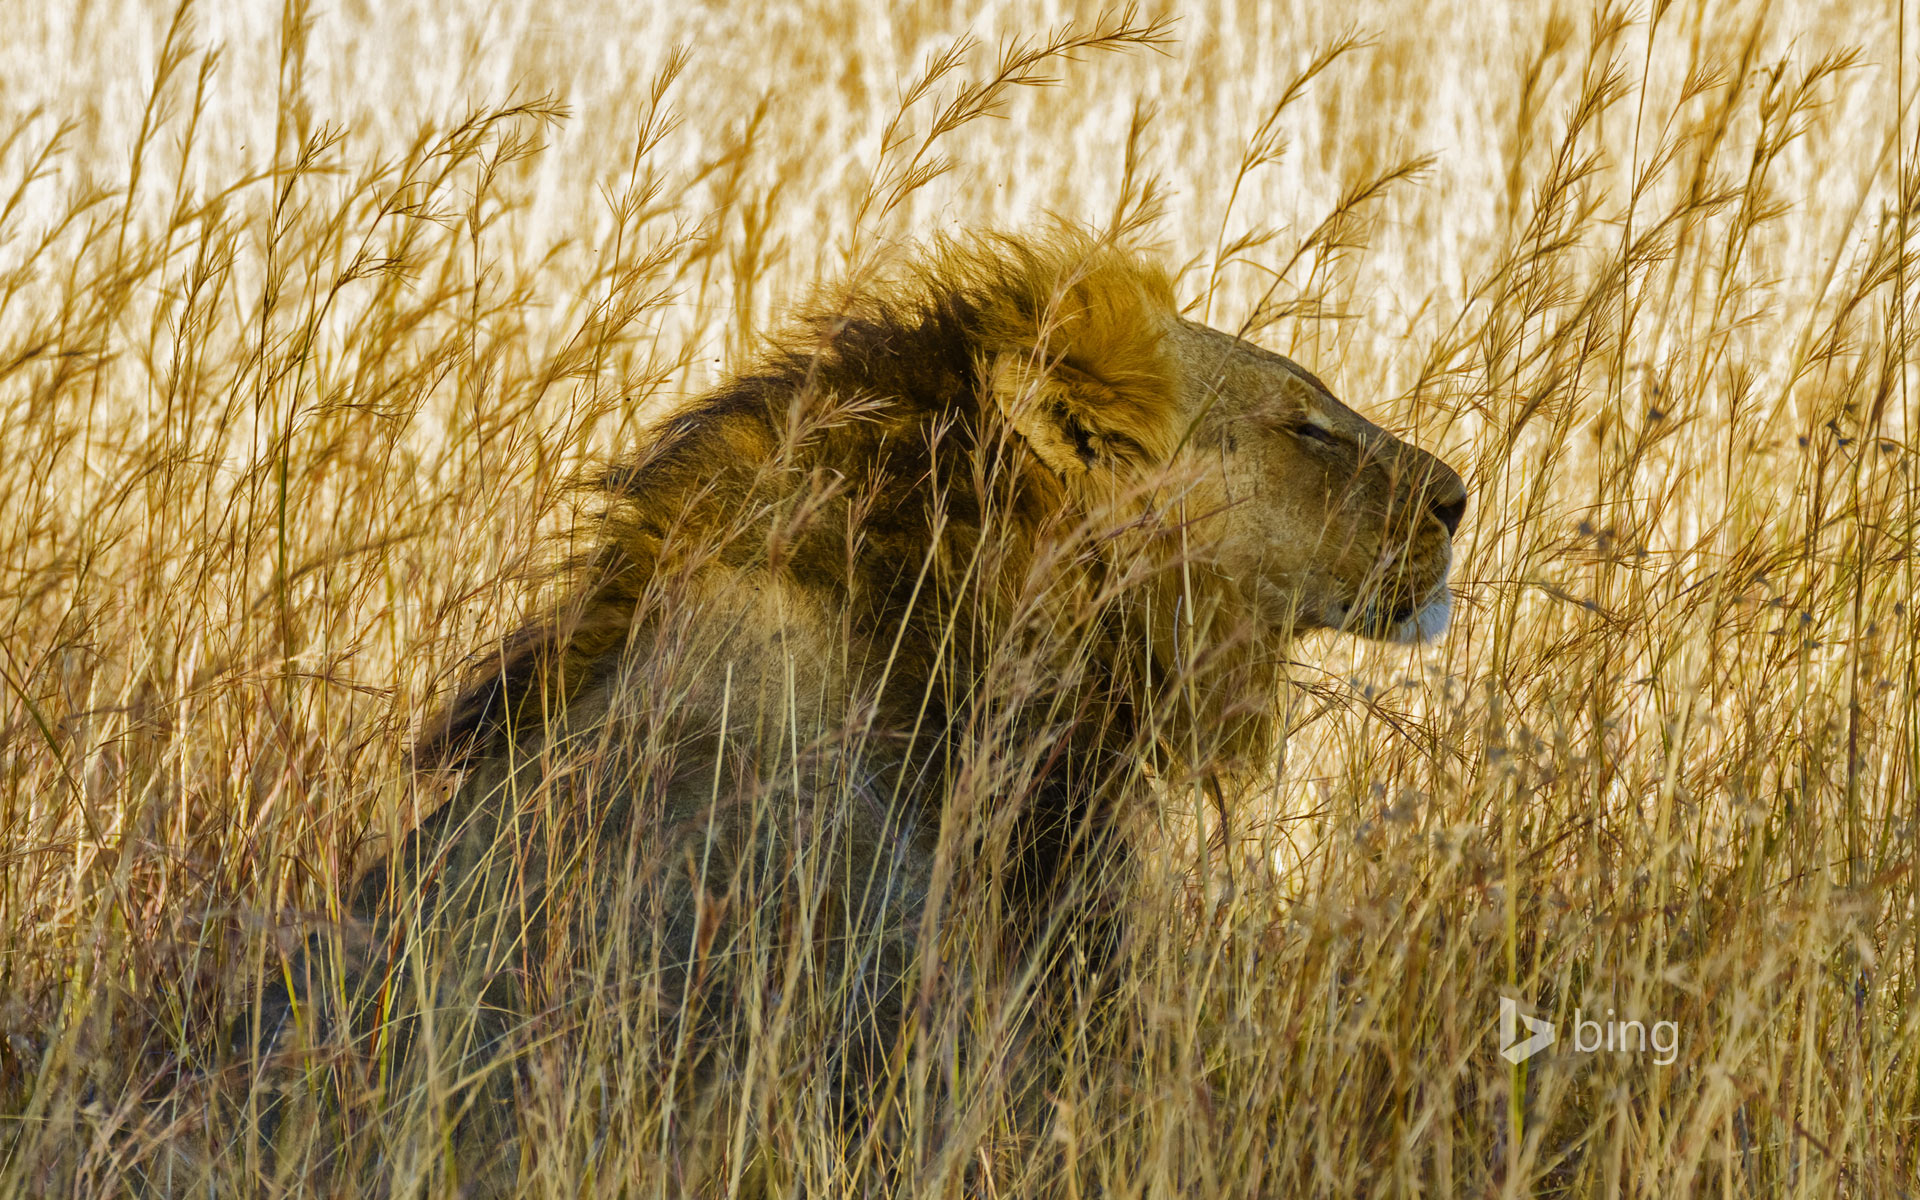 A lion in Hwange National Park, Zimbabwe